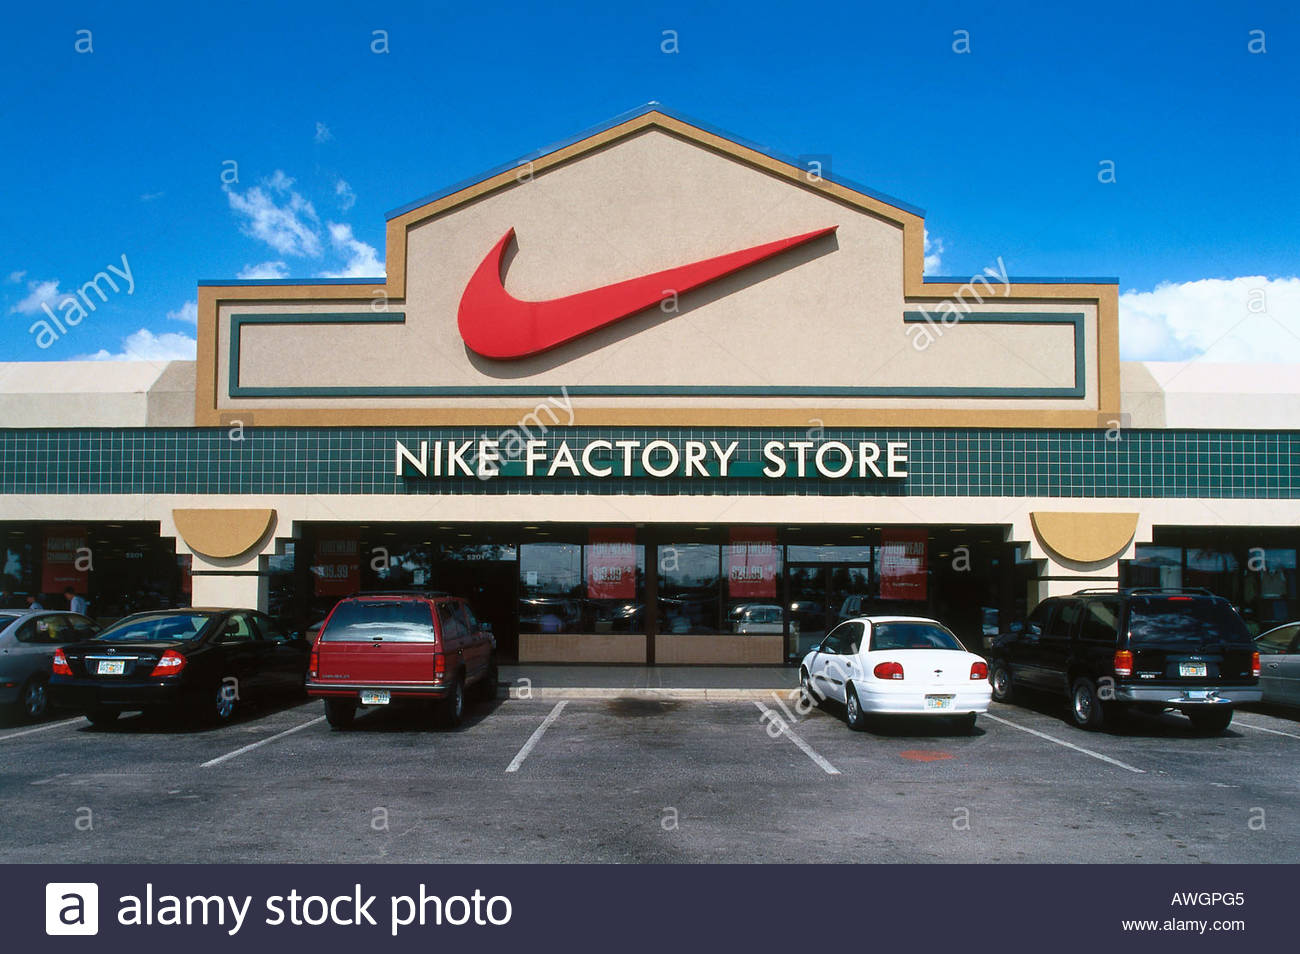 Nike Factory Store - Orlando International - Specialist - Orlando, FL Apply. Become a Part of the NIKE, Inc. Team. NIKE, Inc. does more than outfit the world's best athletes. It is a place to explore potential, obliterate boundaries and push out the edges of what can be. The company looks for people who can grow, think, dream and create.